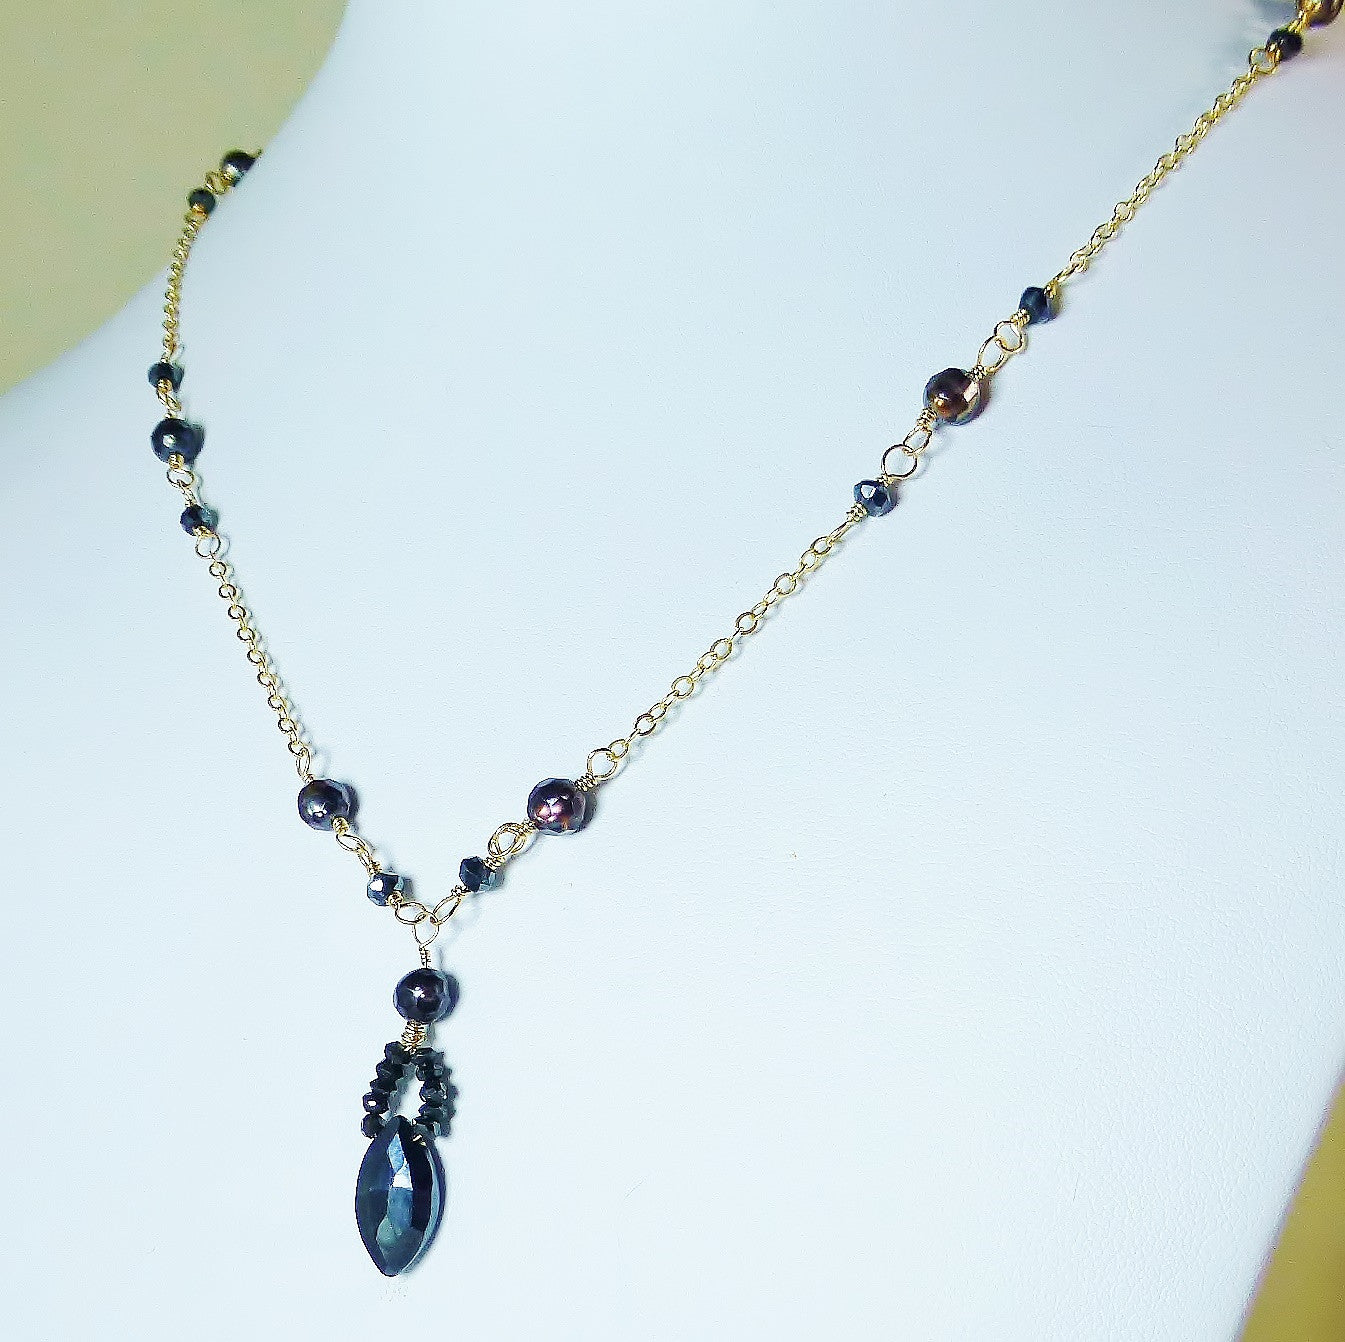 Black spinel, pearl and gold necklace